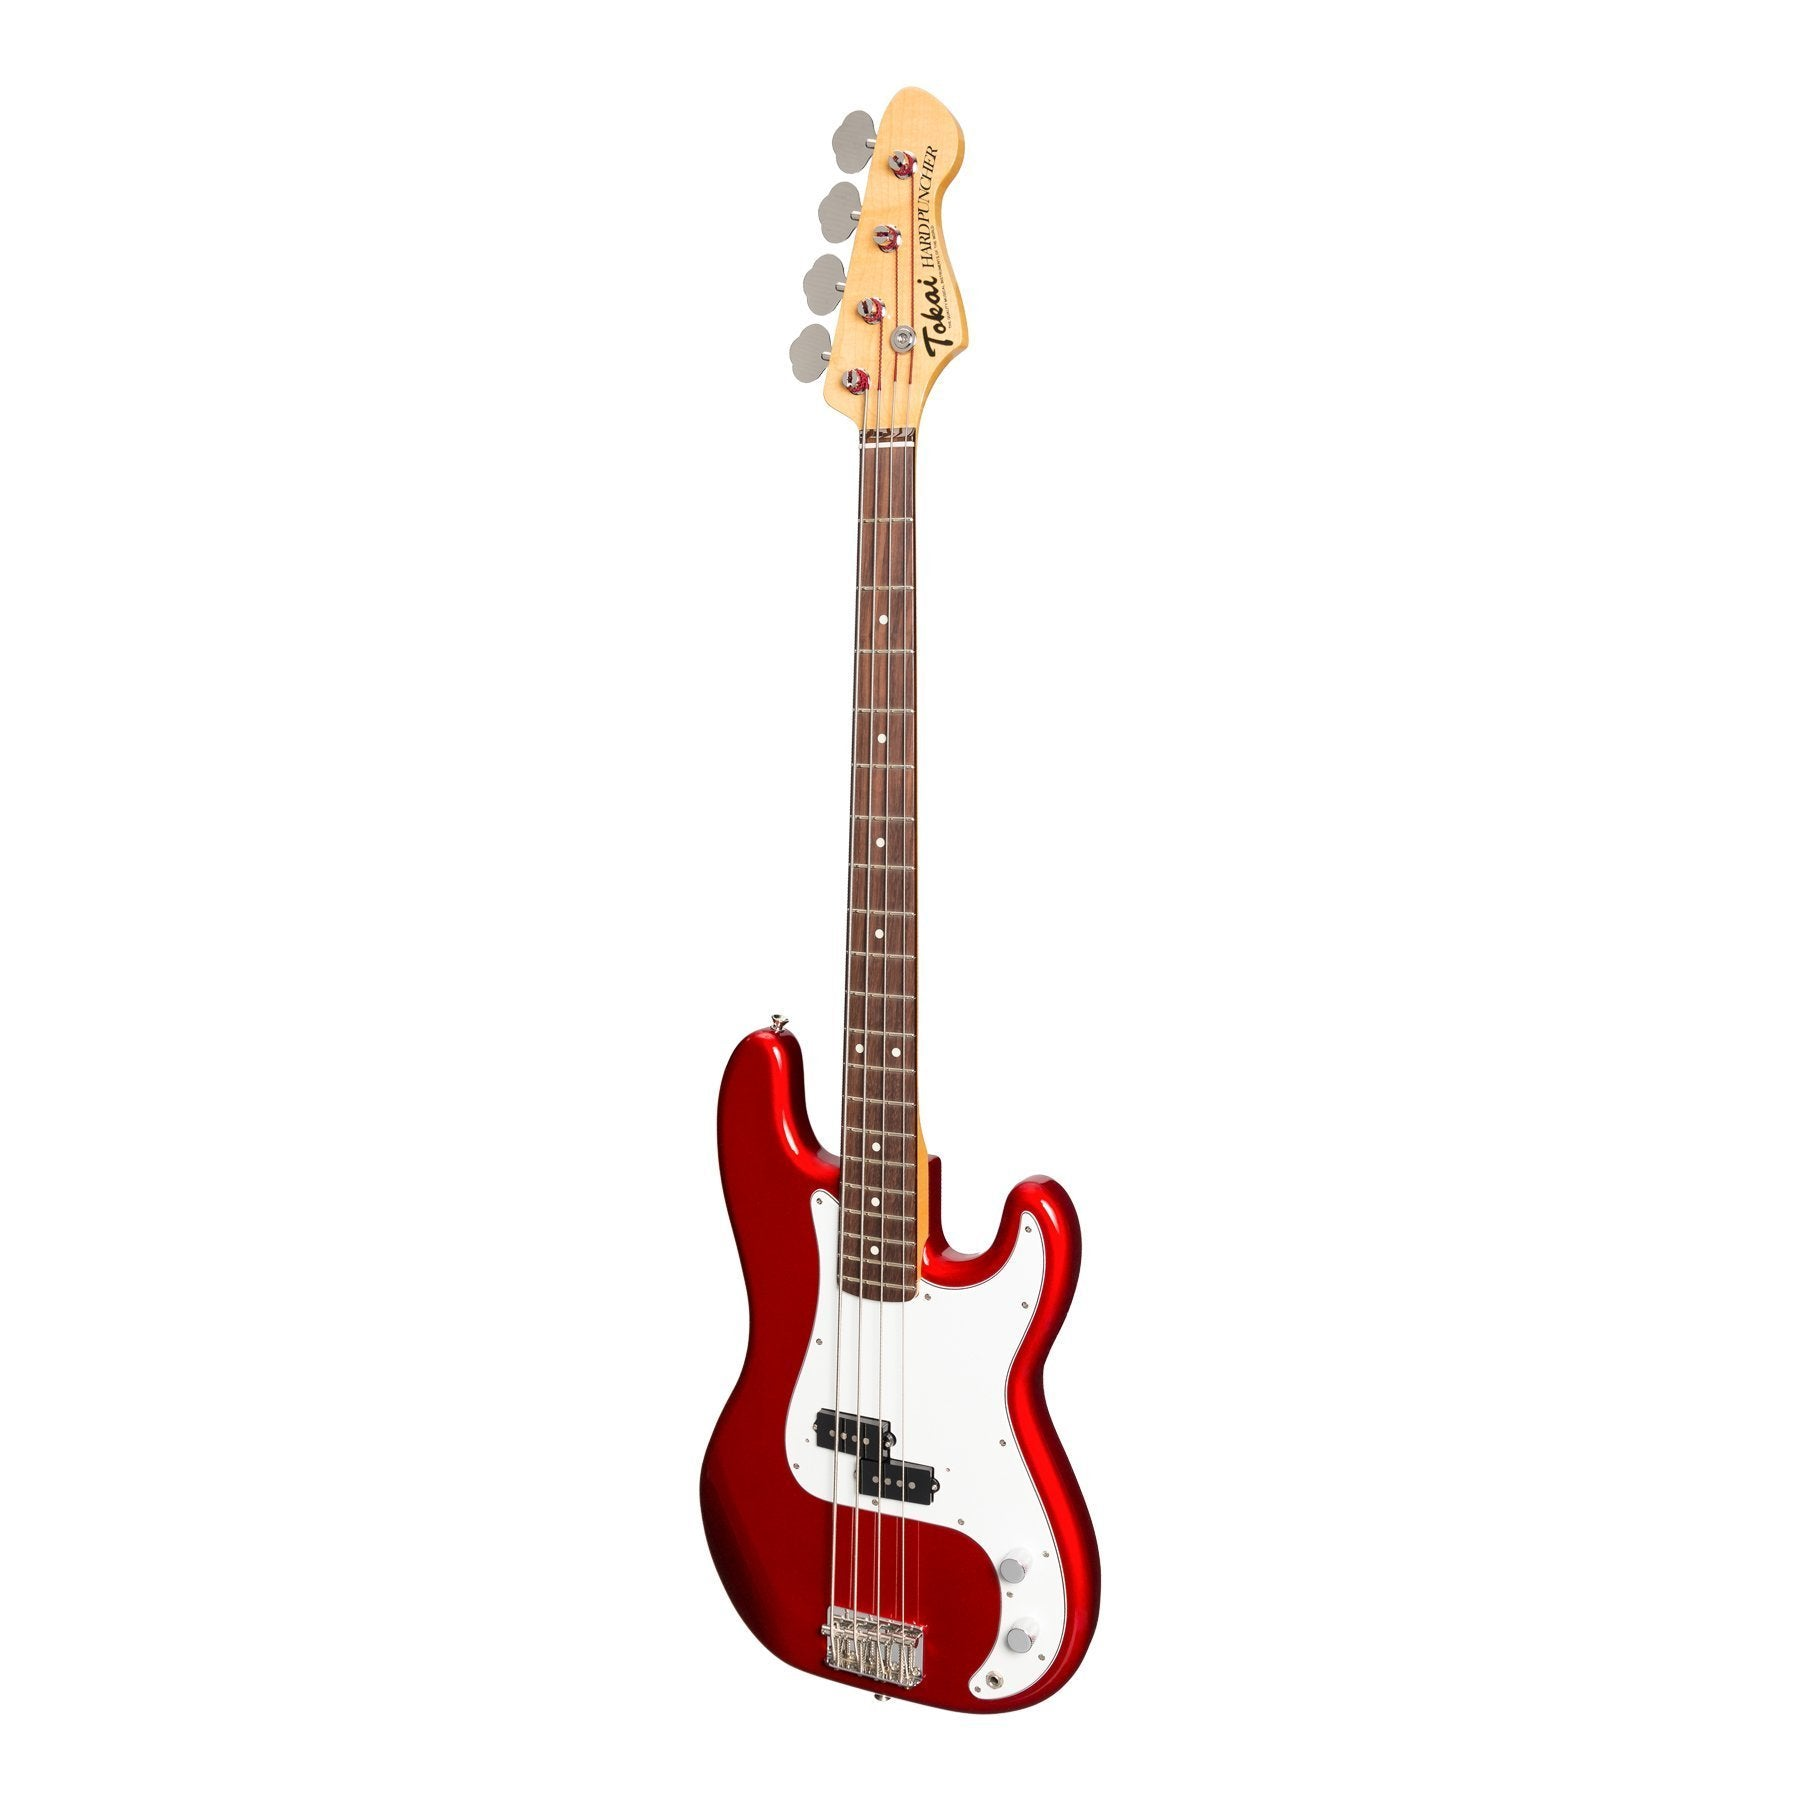 Tokai 'Vintage Series' APB-97 'Hard Puncher' P-Style Electric Bass (Metallic Red)-APB-97-MR/R